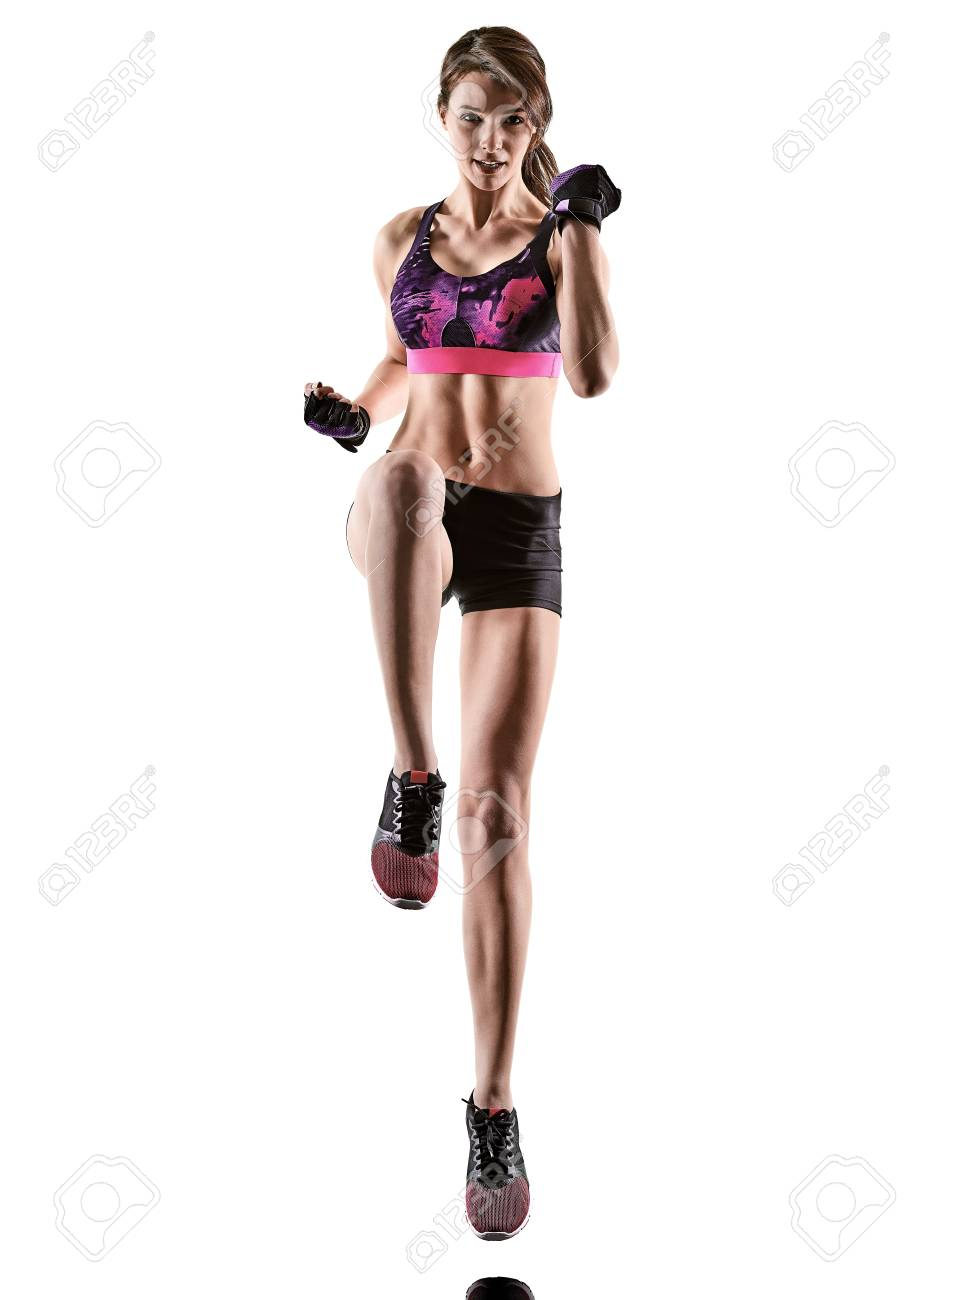 one caucasian woman exercising cardio boxing cross core workout fitness exercise aerobics silhouette isolated on white background - 123145593